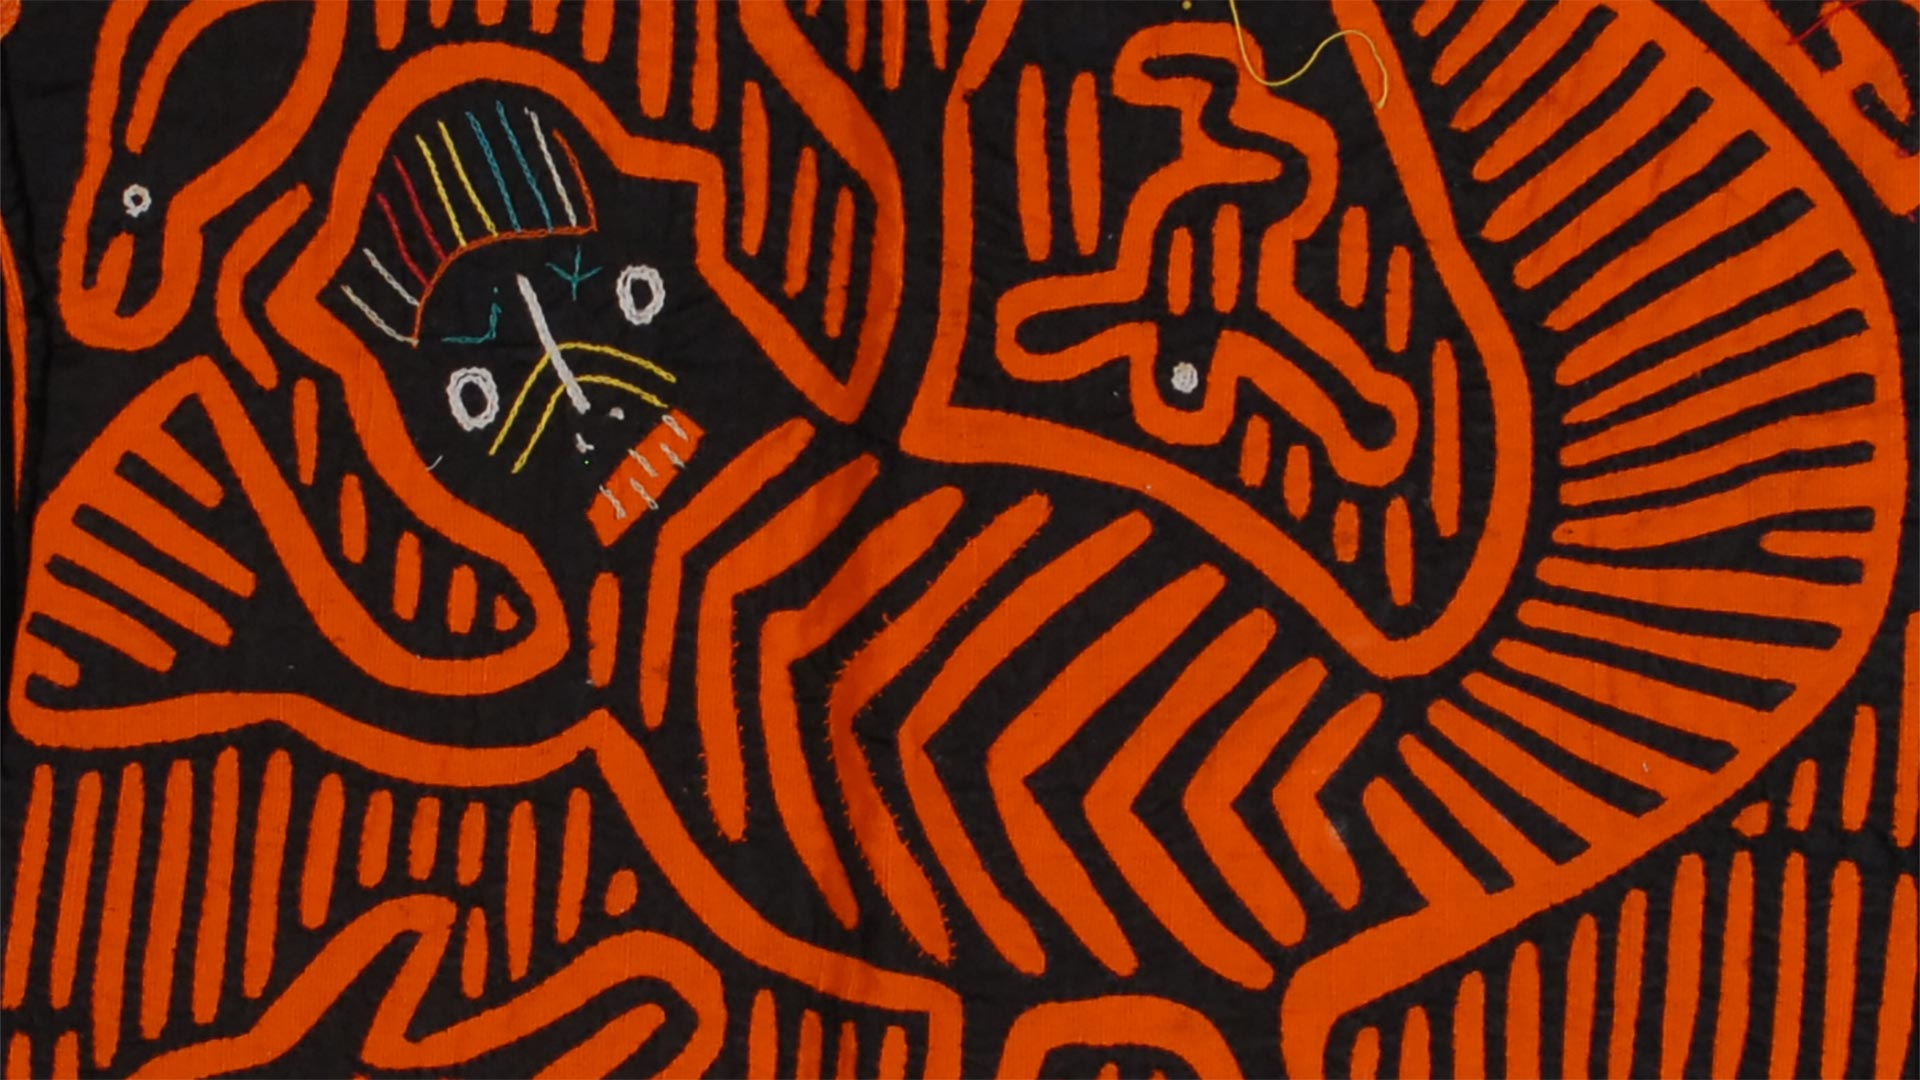 geometric pattern in orange and black of a small animal on fabric